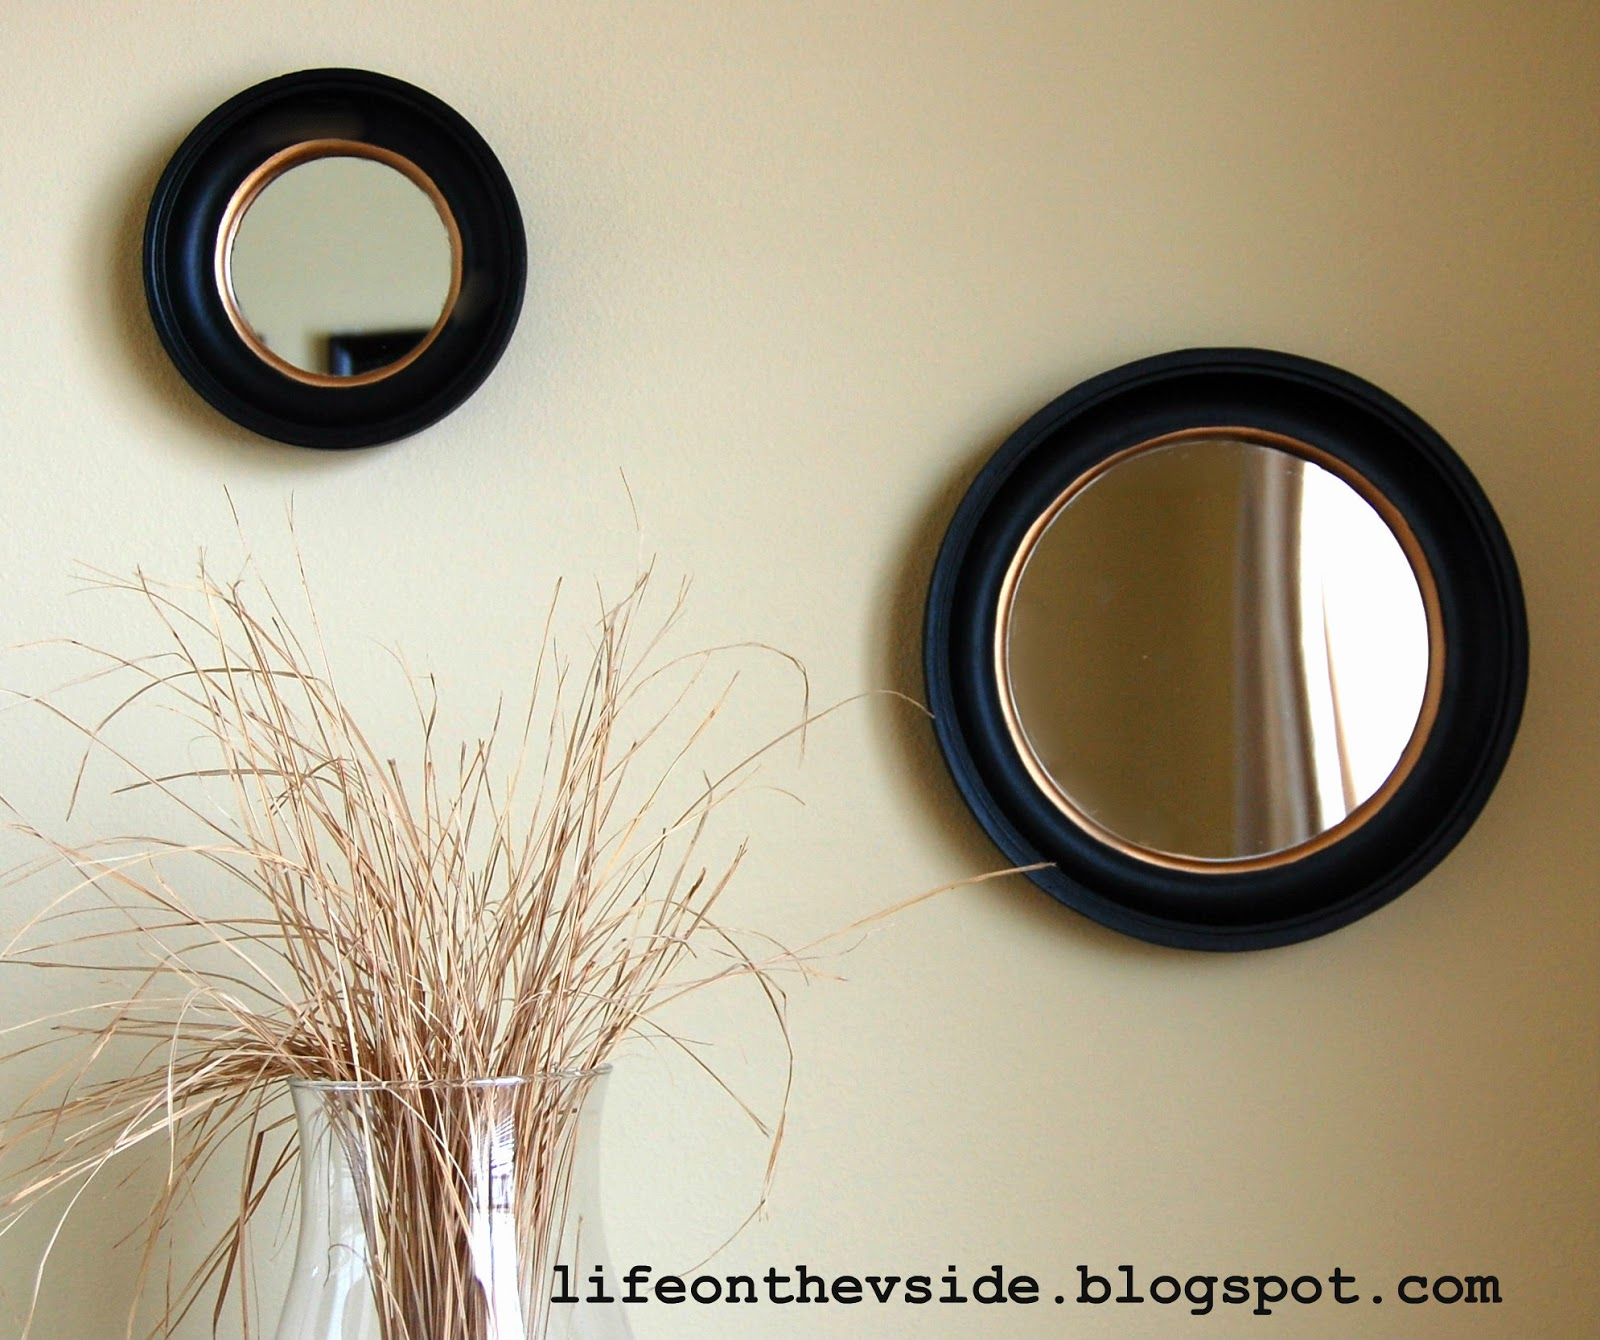 Wall Mounted Full Length Mirror | Crate And Barrel Mirrors | Cb2 Outdoor Rug